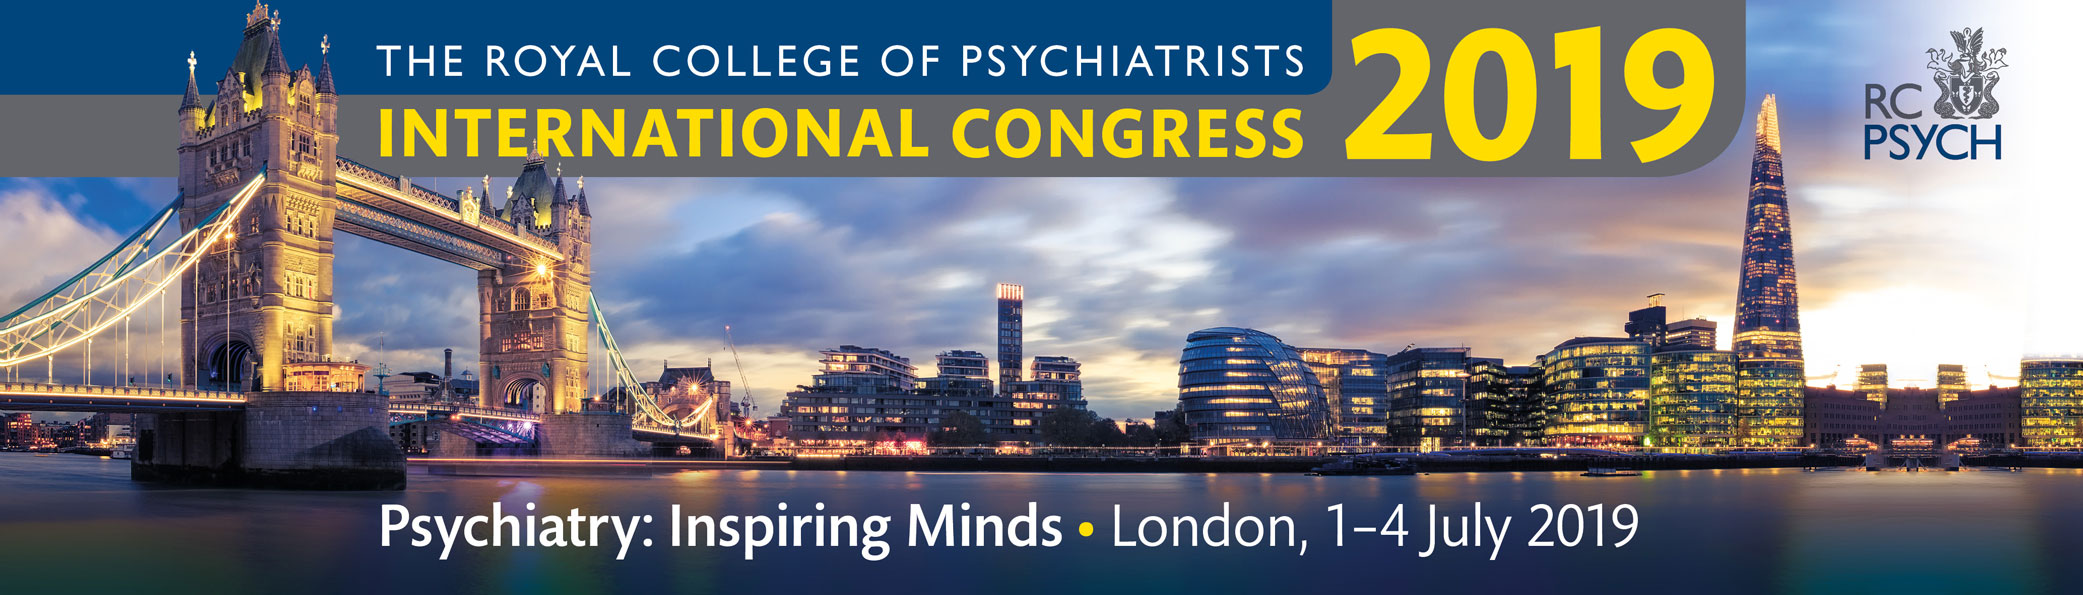 International Congress 2019 | London, 1-4 July 2019 | Psychiatry: Inspiring Minds